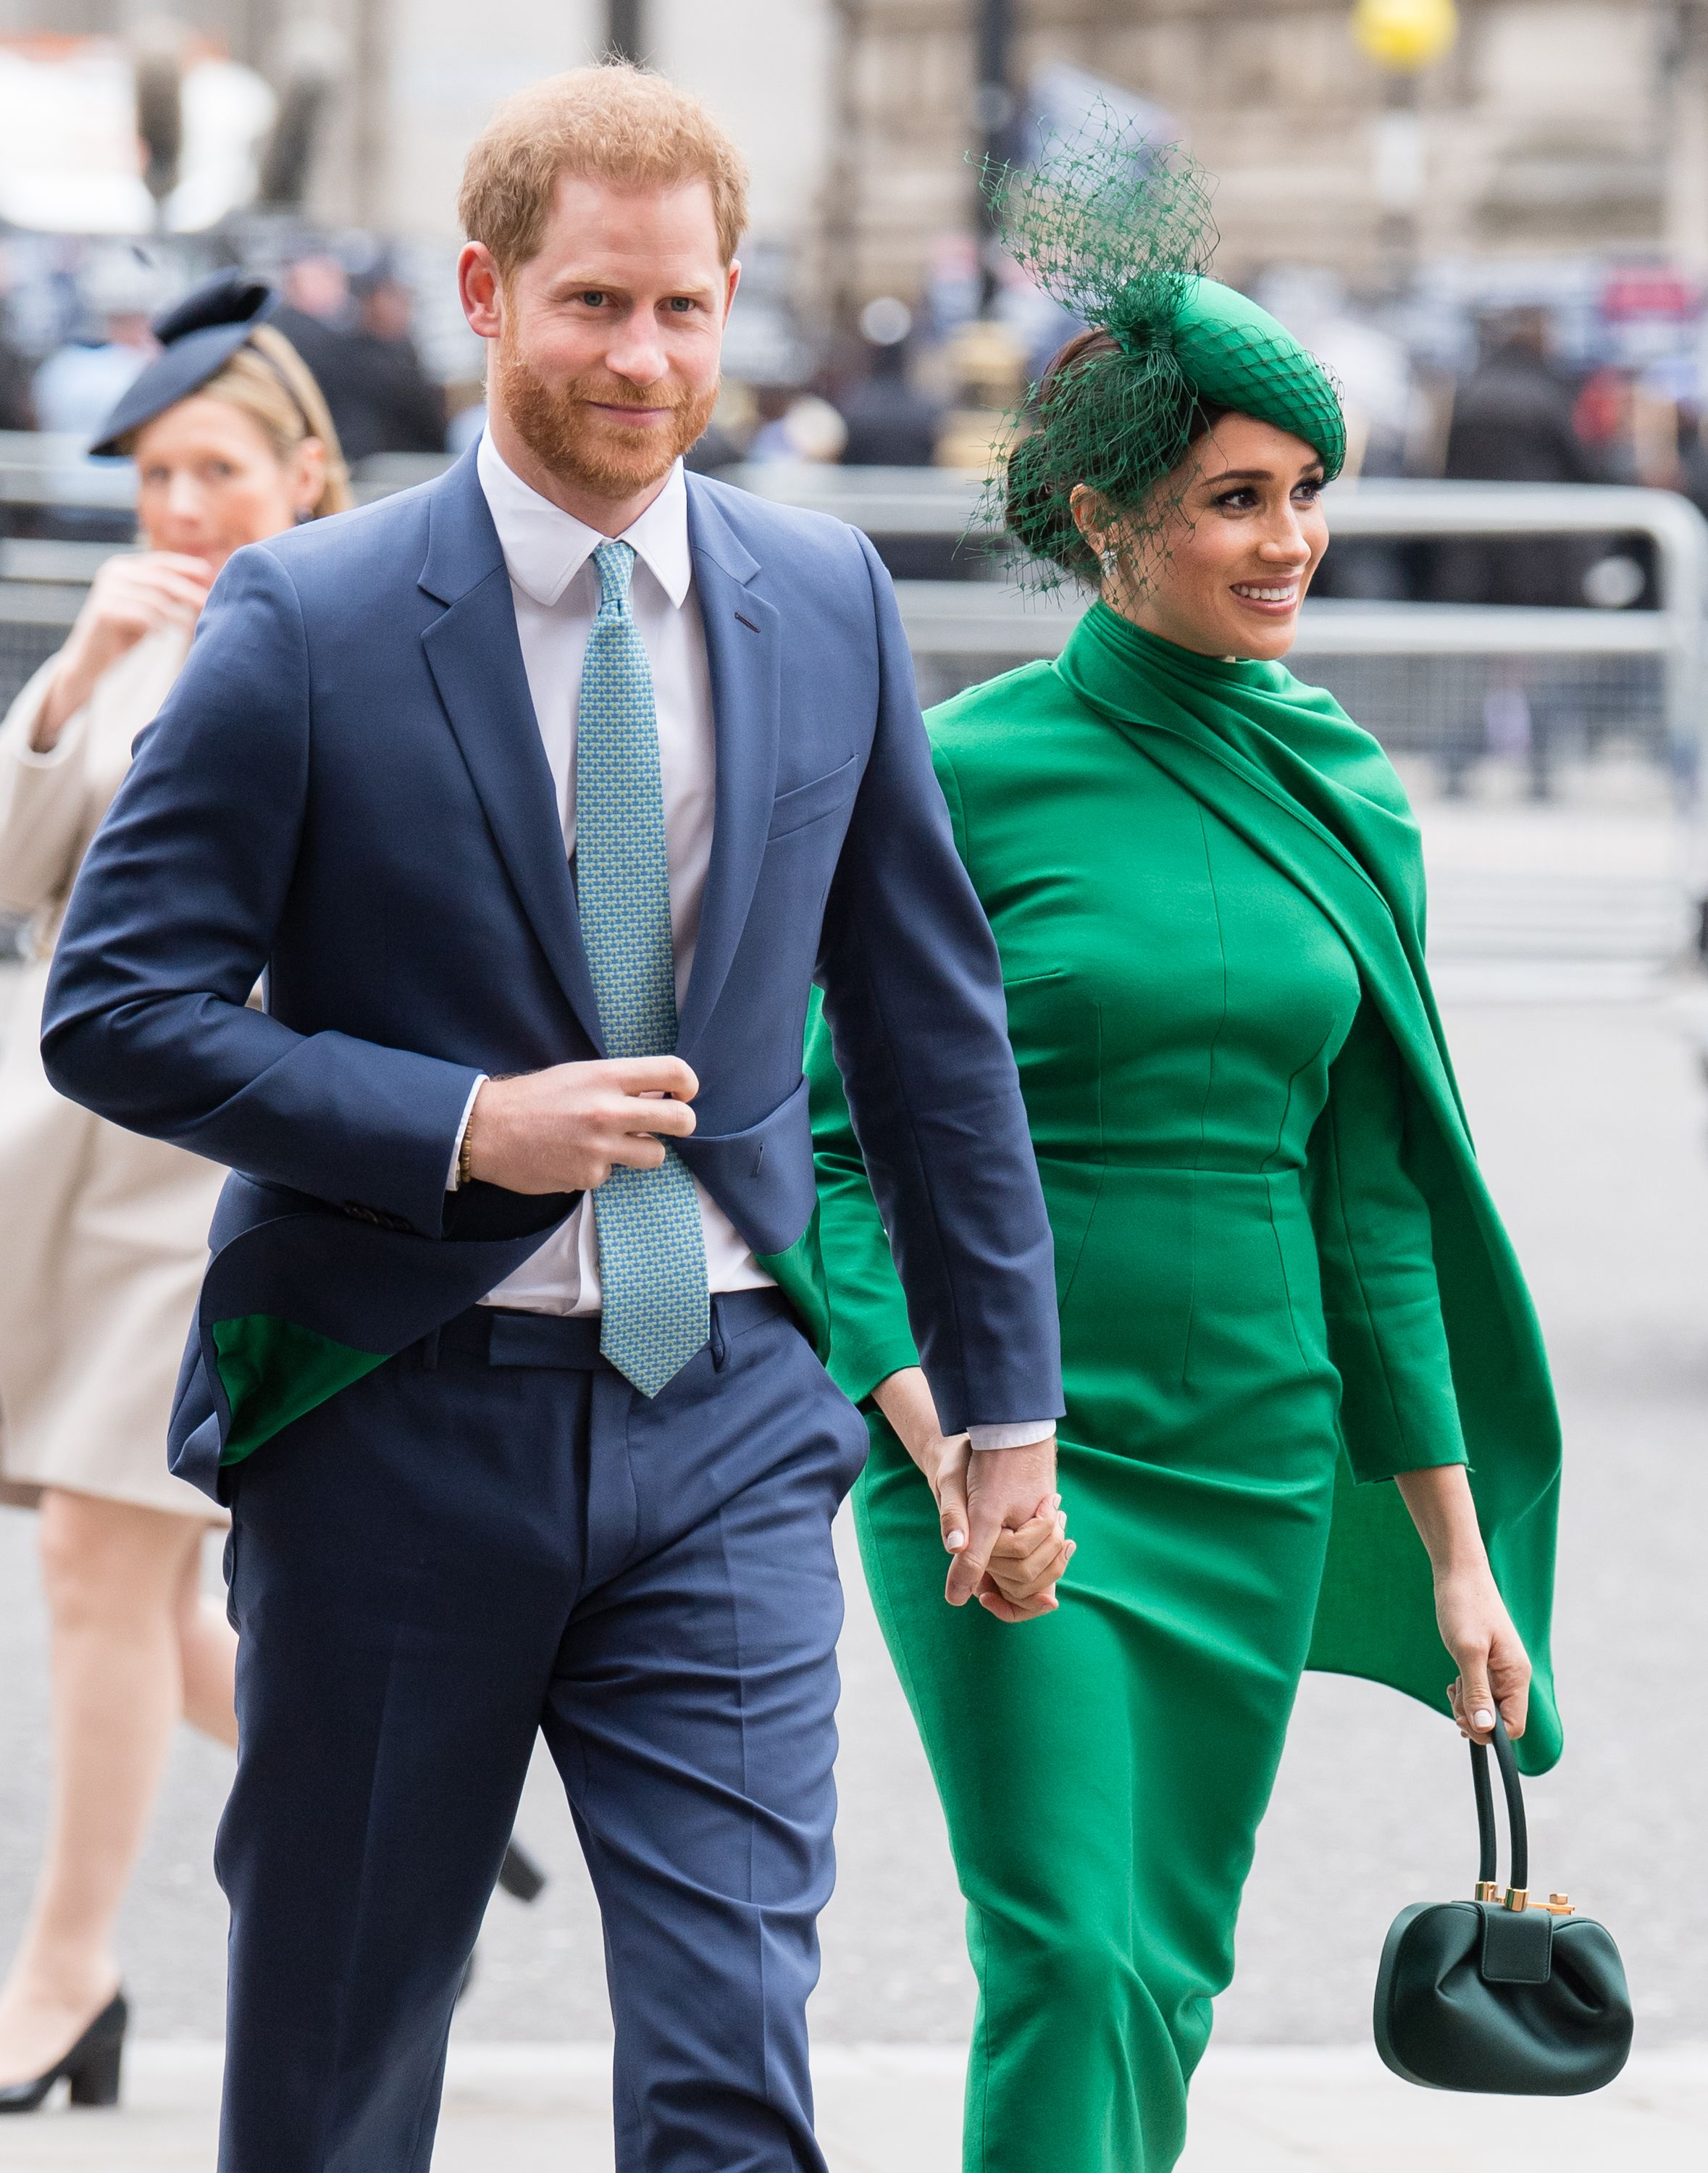 Prince Harry and Duchess Meghan atthe Commonwealth Day Serviceon March 09, 2020, in London, England   Photo:Samir Hussein/WireImage/Getty Images